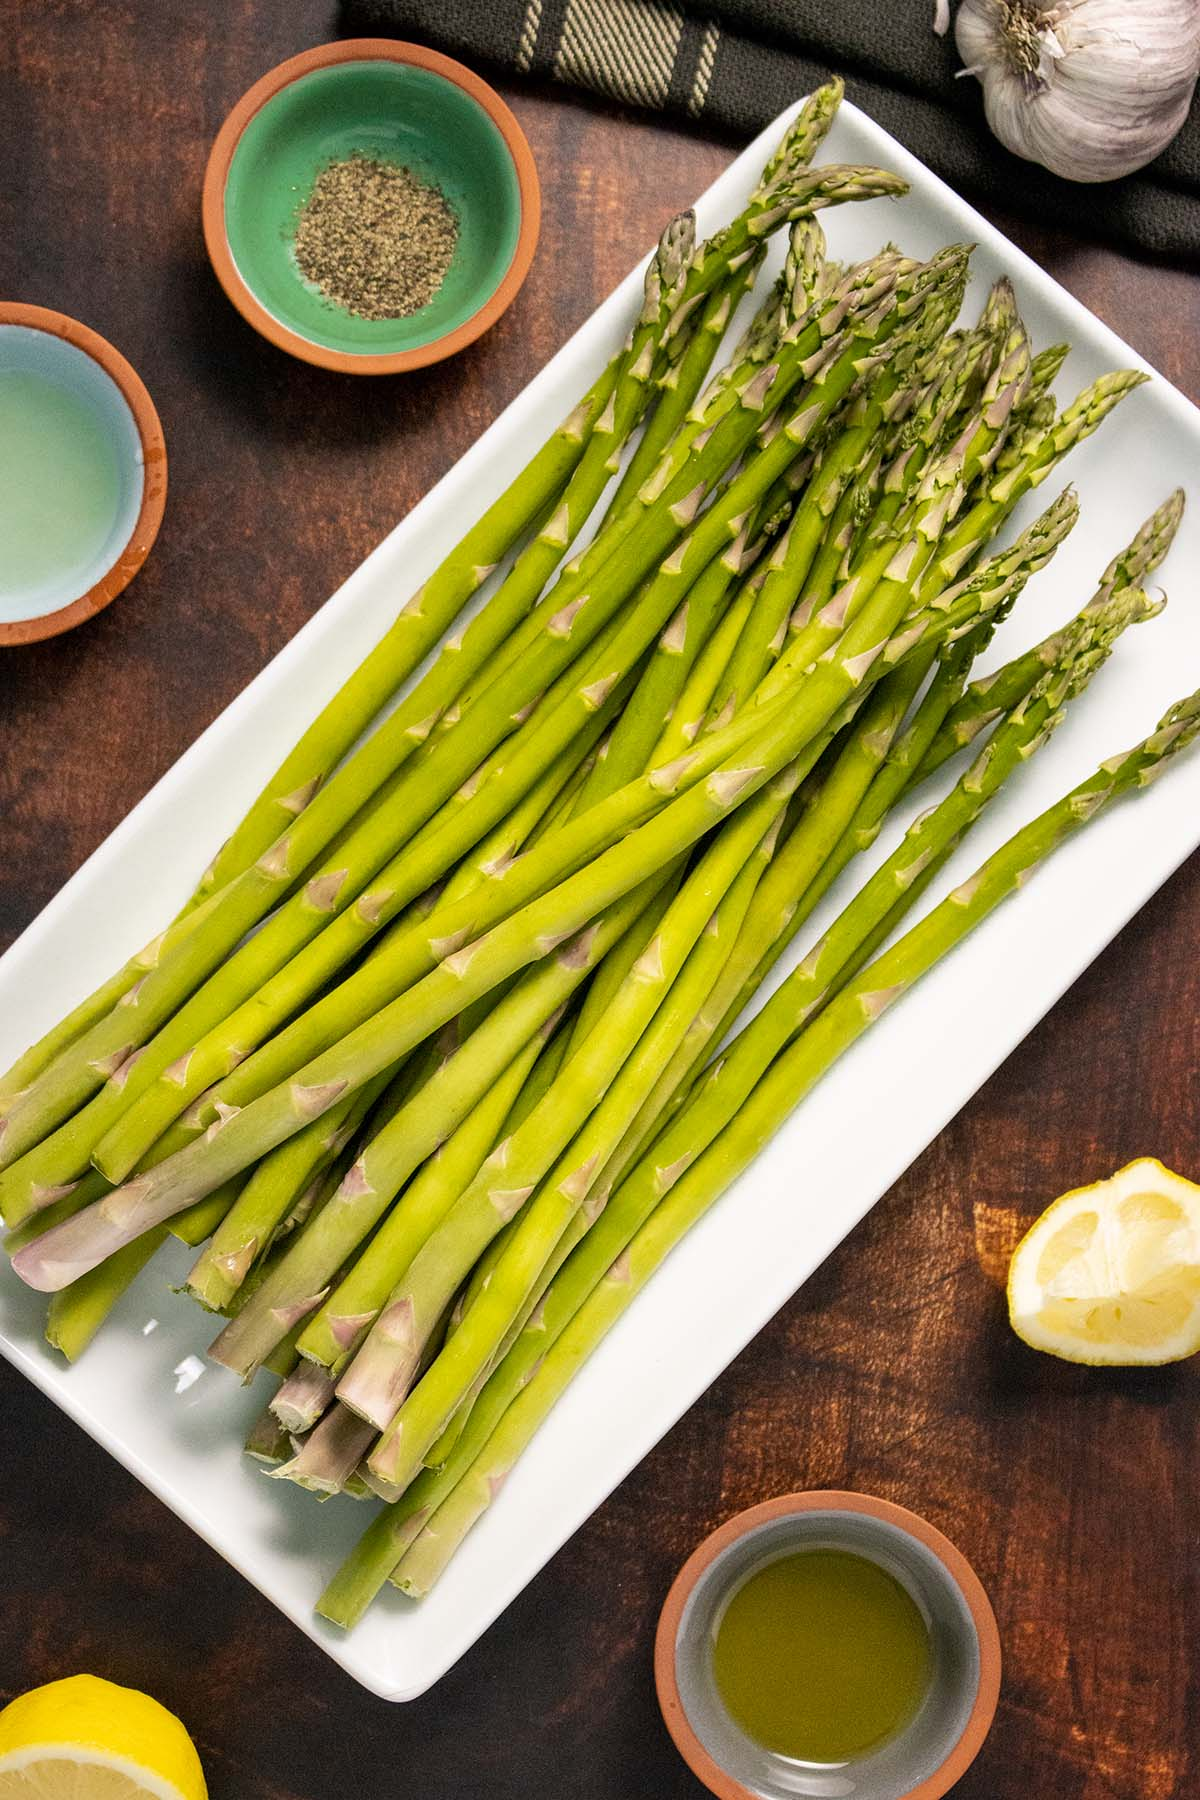 uncooked asparagus on a plate surrounded by garlic, lemon, oil, and black pepper in small bowls